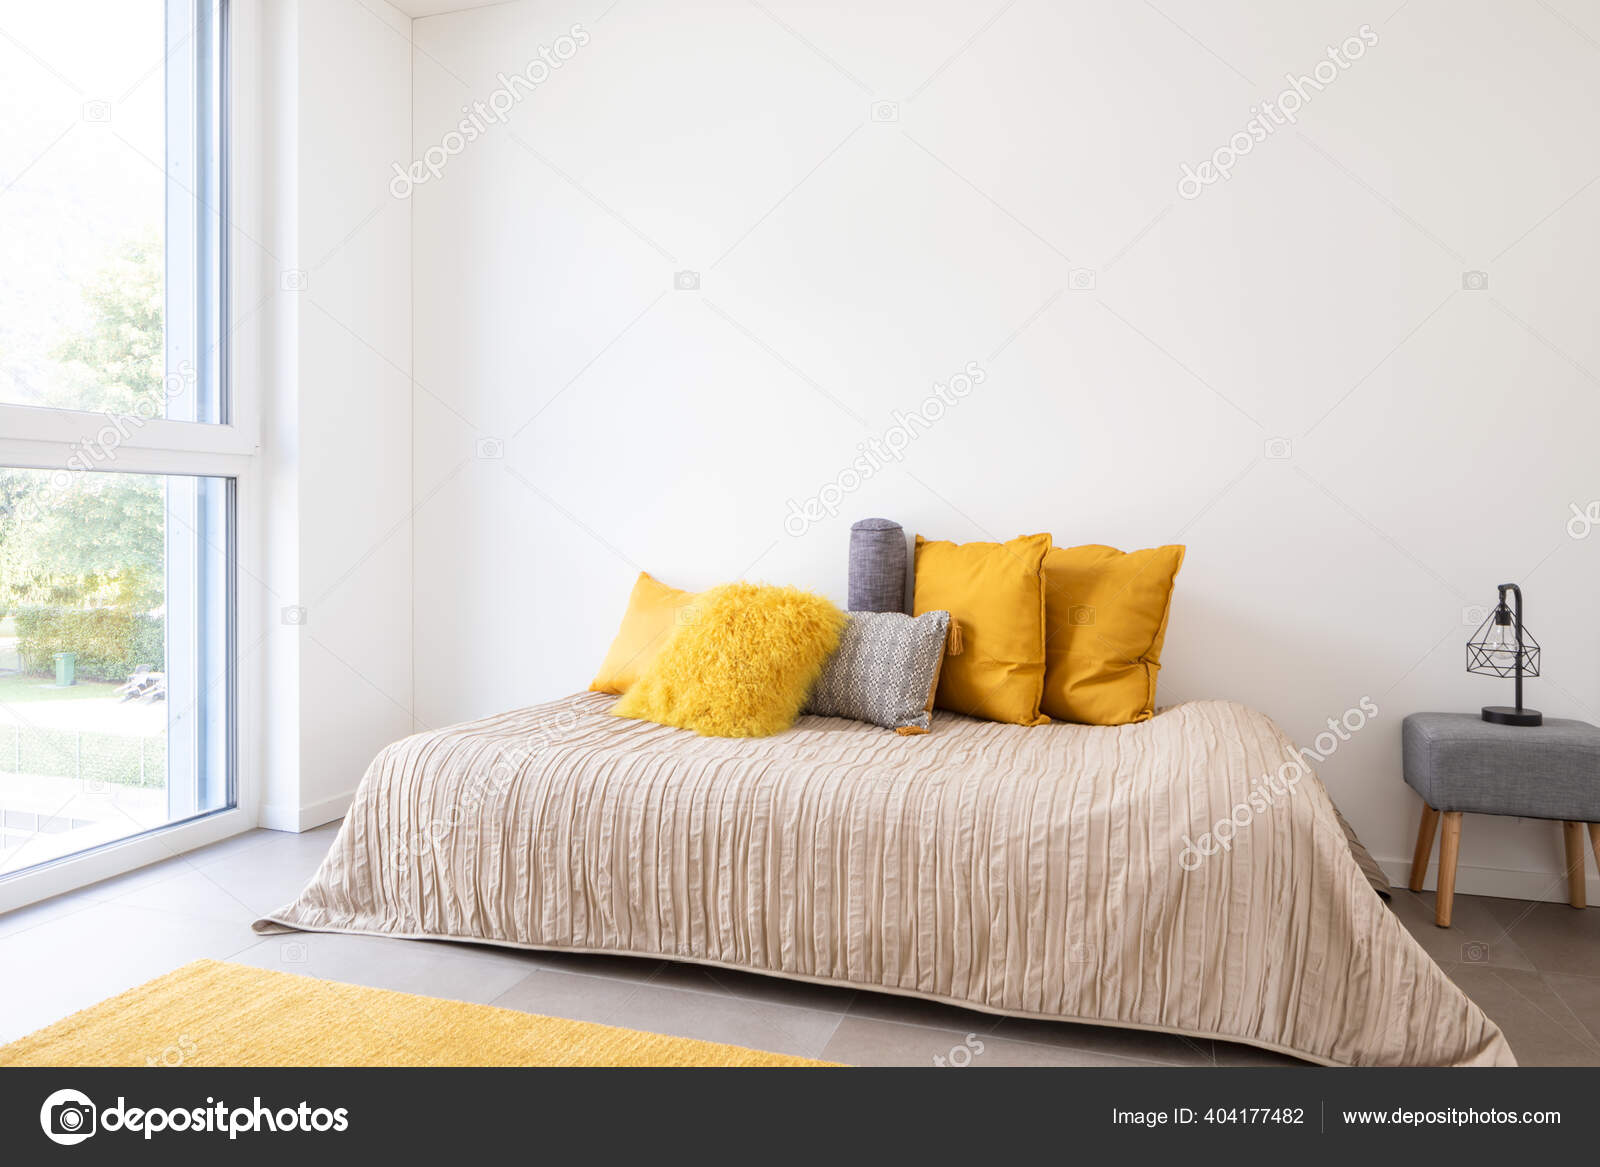 Nice Bedroom Bed Sidetable Lots Pillows Detail Bed Large White Stock Photo C Zveiger 404177482